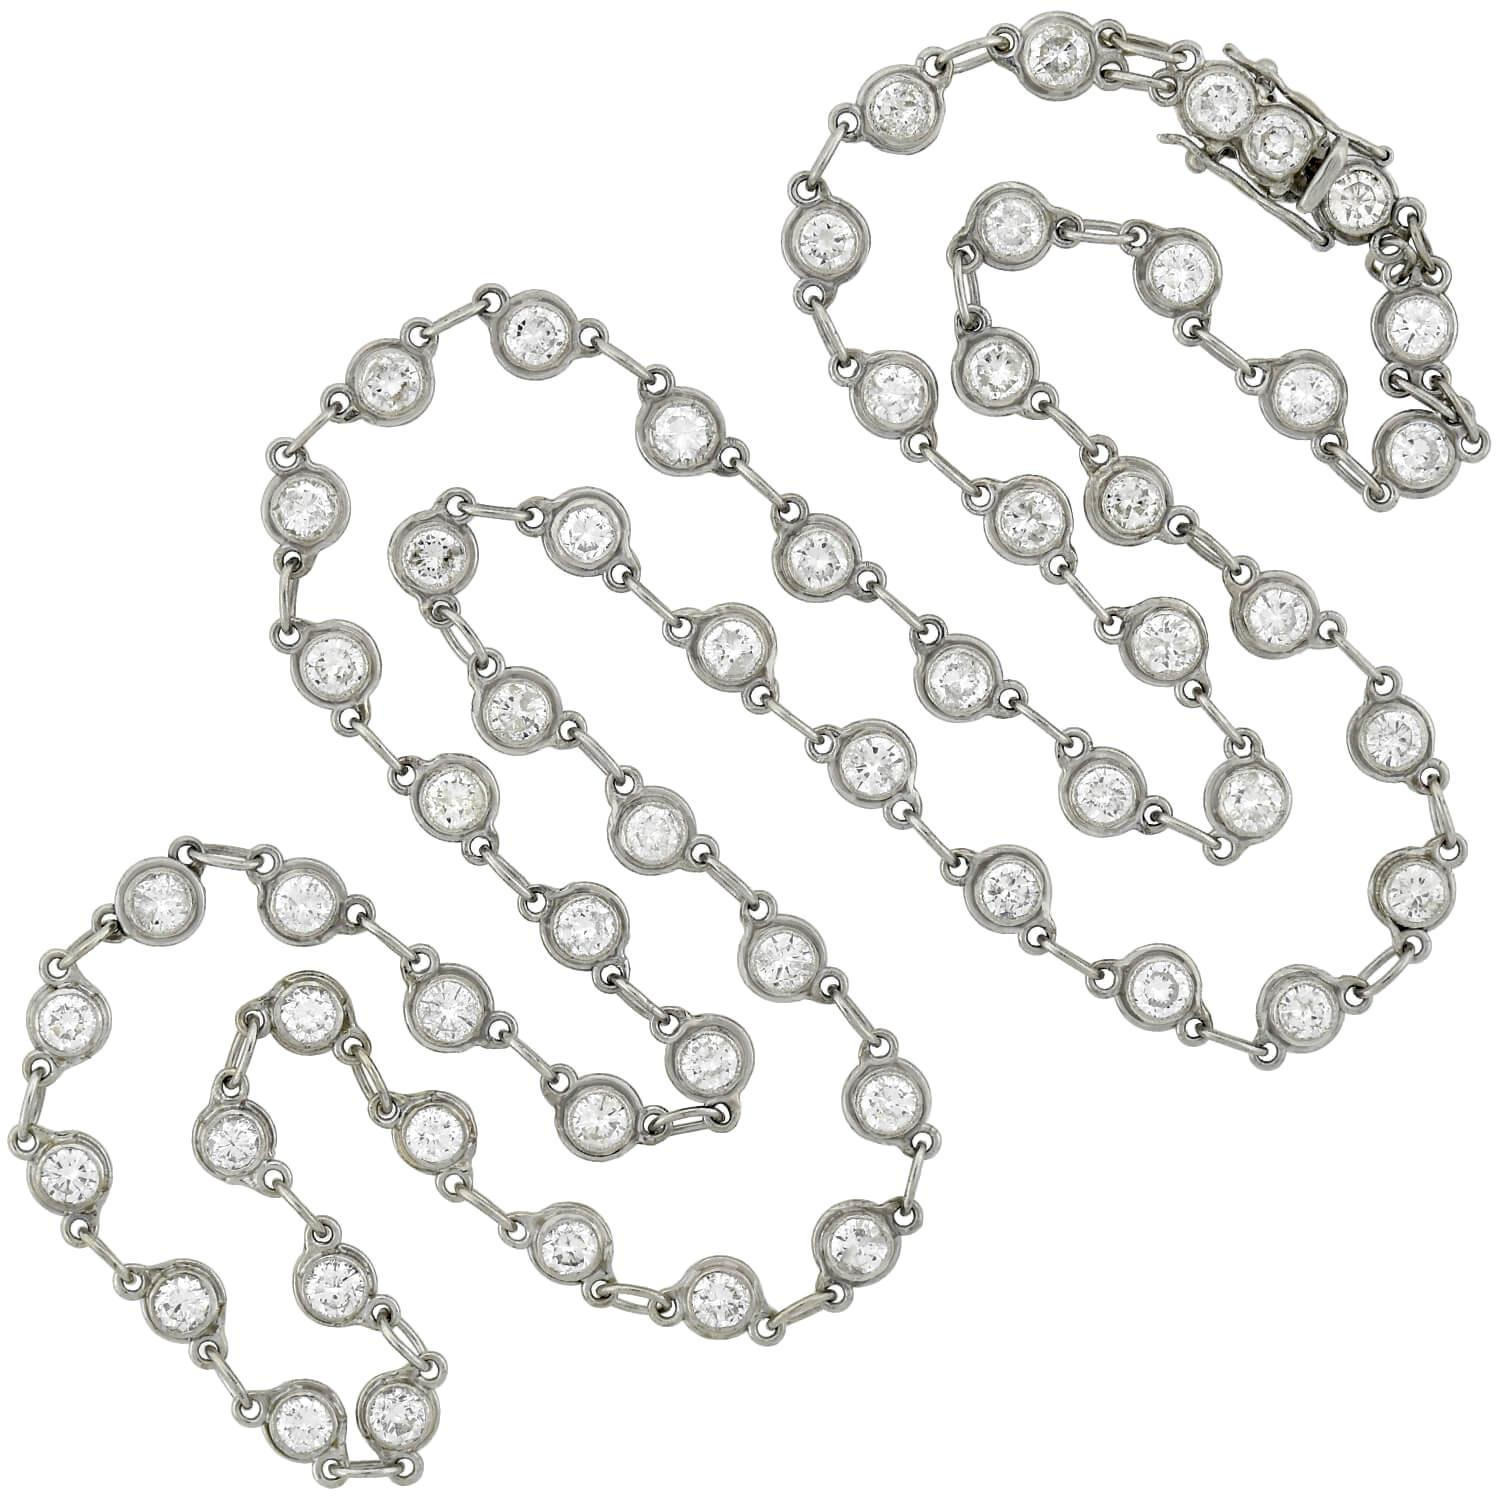 Retro 5.30 Total Carat Diamonds by the Yard Link Chain Necklace